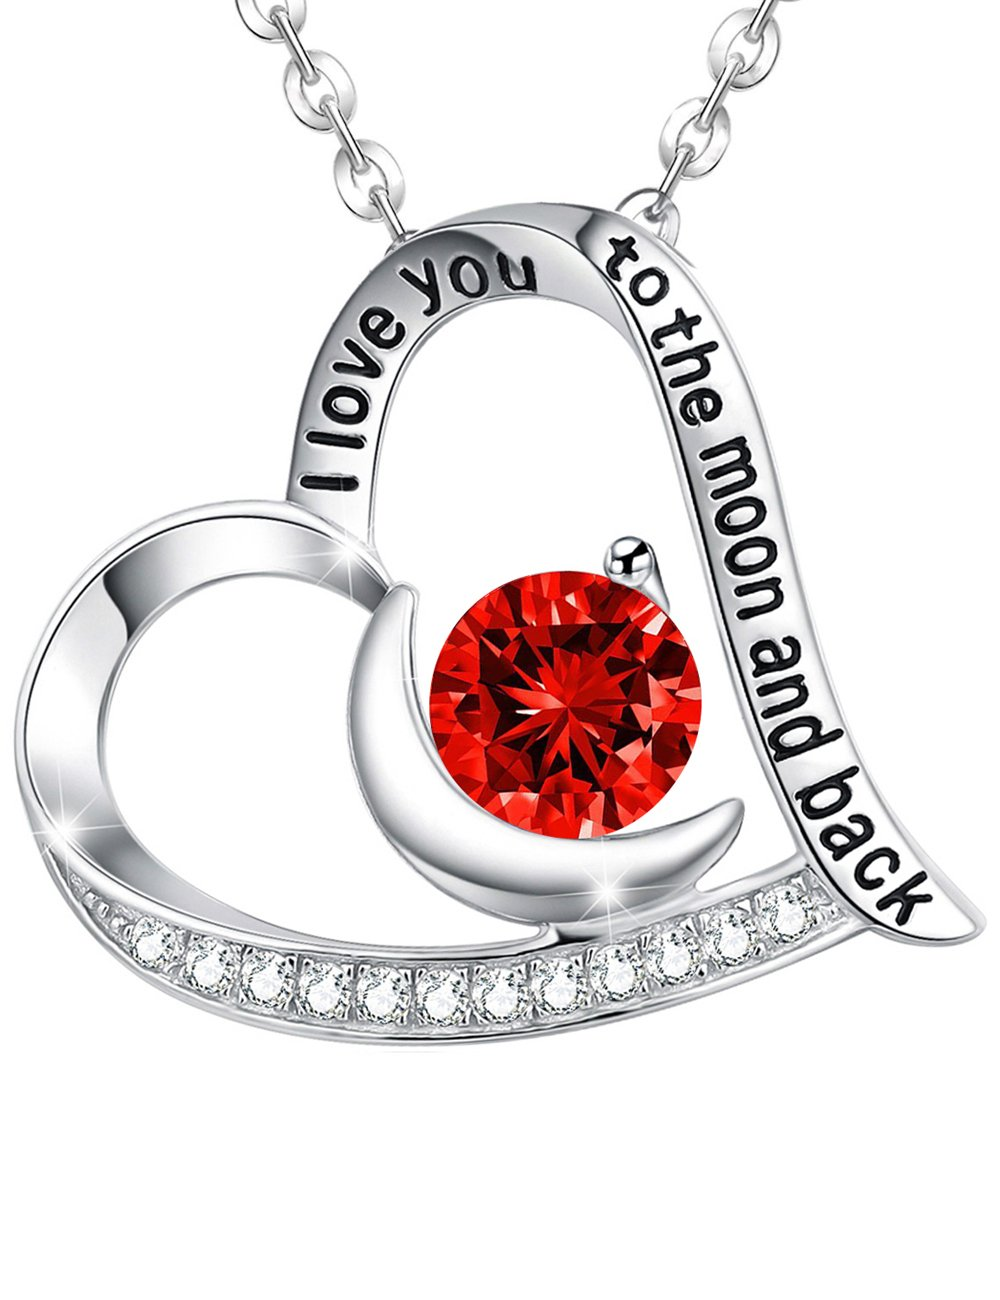 July Birthstone LC Red Ruby Necklace Fine Jewelry I Love You to the Moon and Back Heart Moon pendant Birthday Gifts for Women Wife Mom Grandma Teen Girls Sterling Silver Jewelry